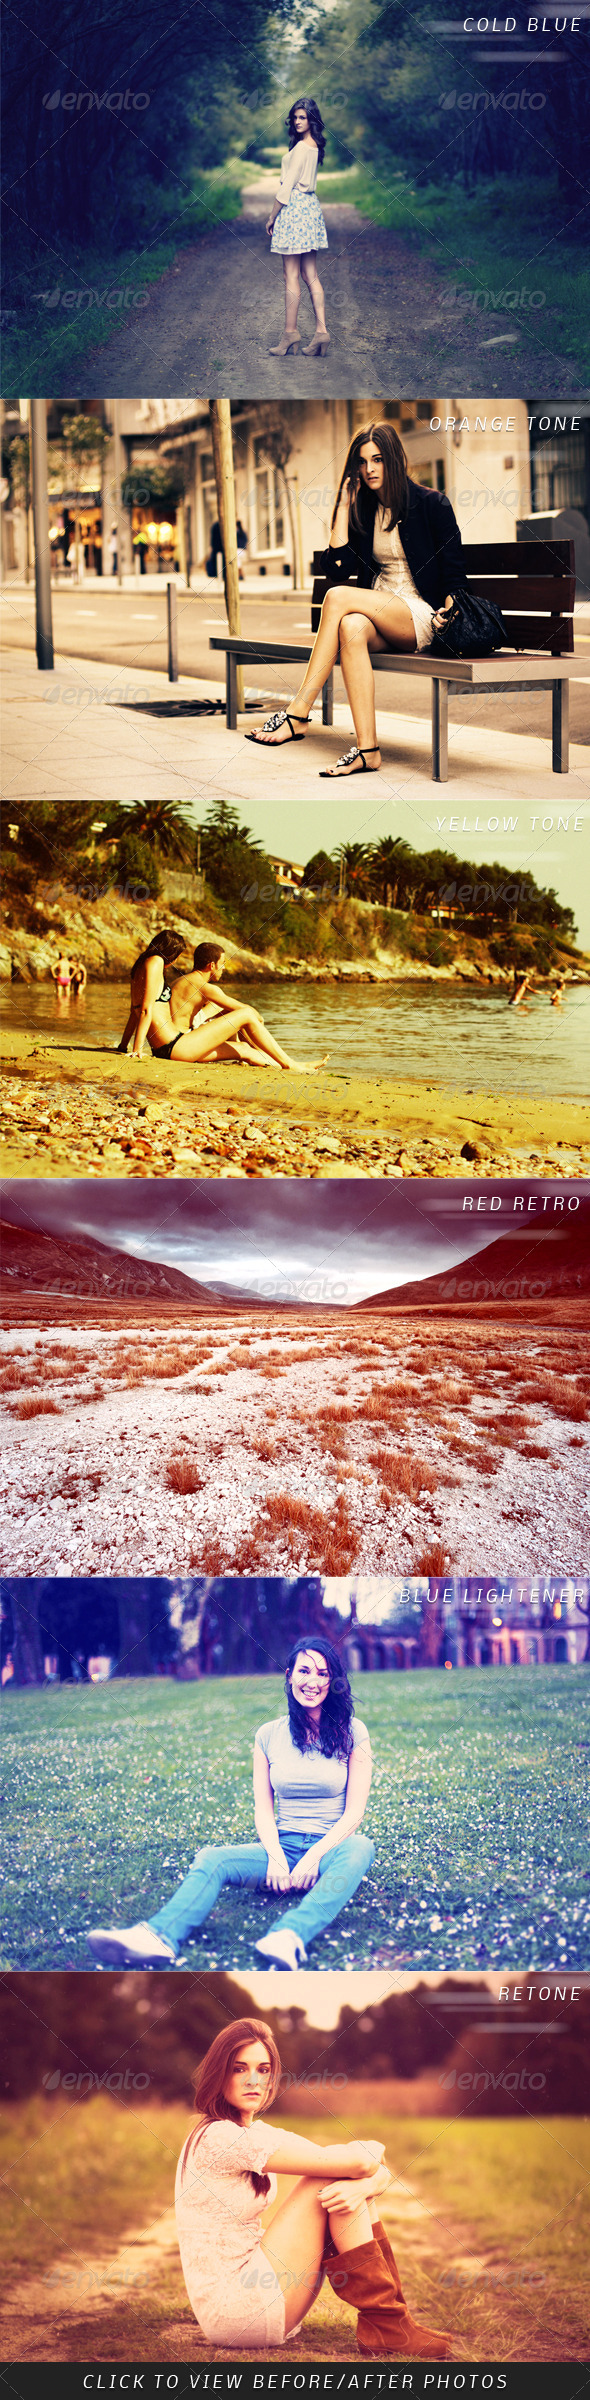 Toner | Image Tones & Actions - Photo Effects Actions